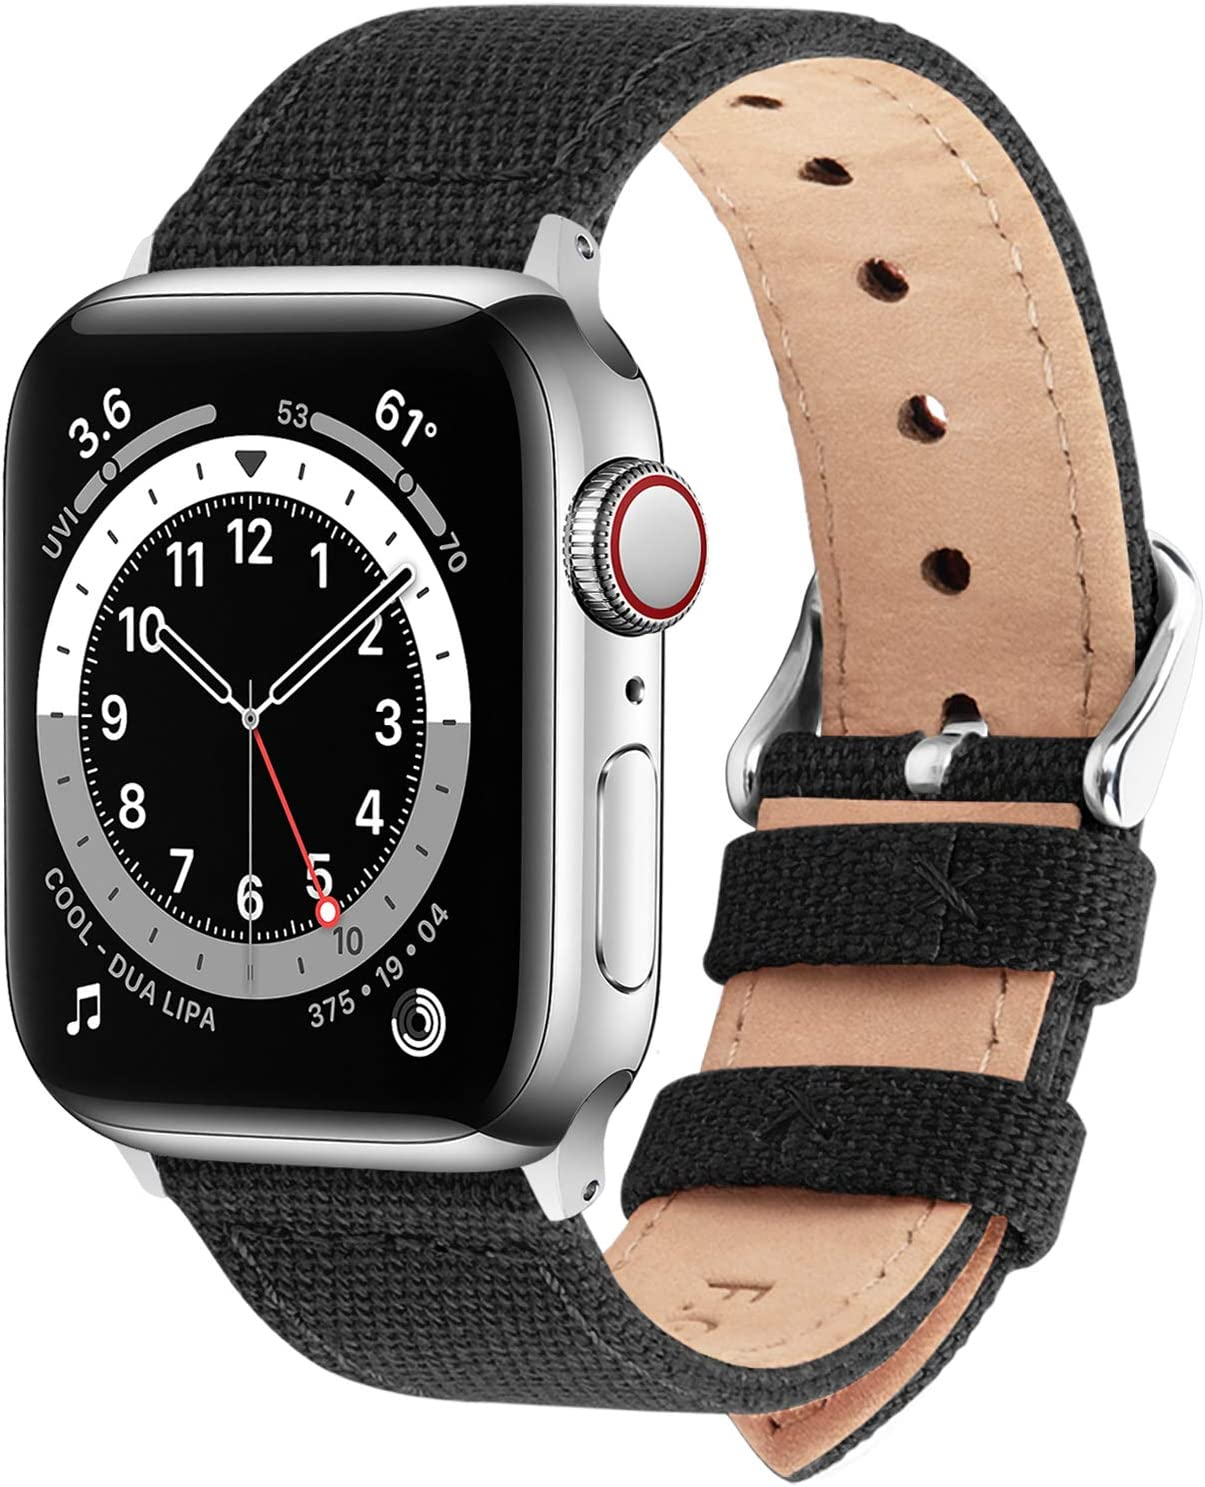 Fullmosa Compatible Apple Watch Band 44mm 42mm 40mm 38mm, 8 Colors Canvas Style for iWatch Strap Compatible with Apple Watch Series 4/5/6/SE (44mm) Series 3/2/1 (42mm),44mm 42mm Black